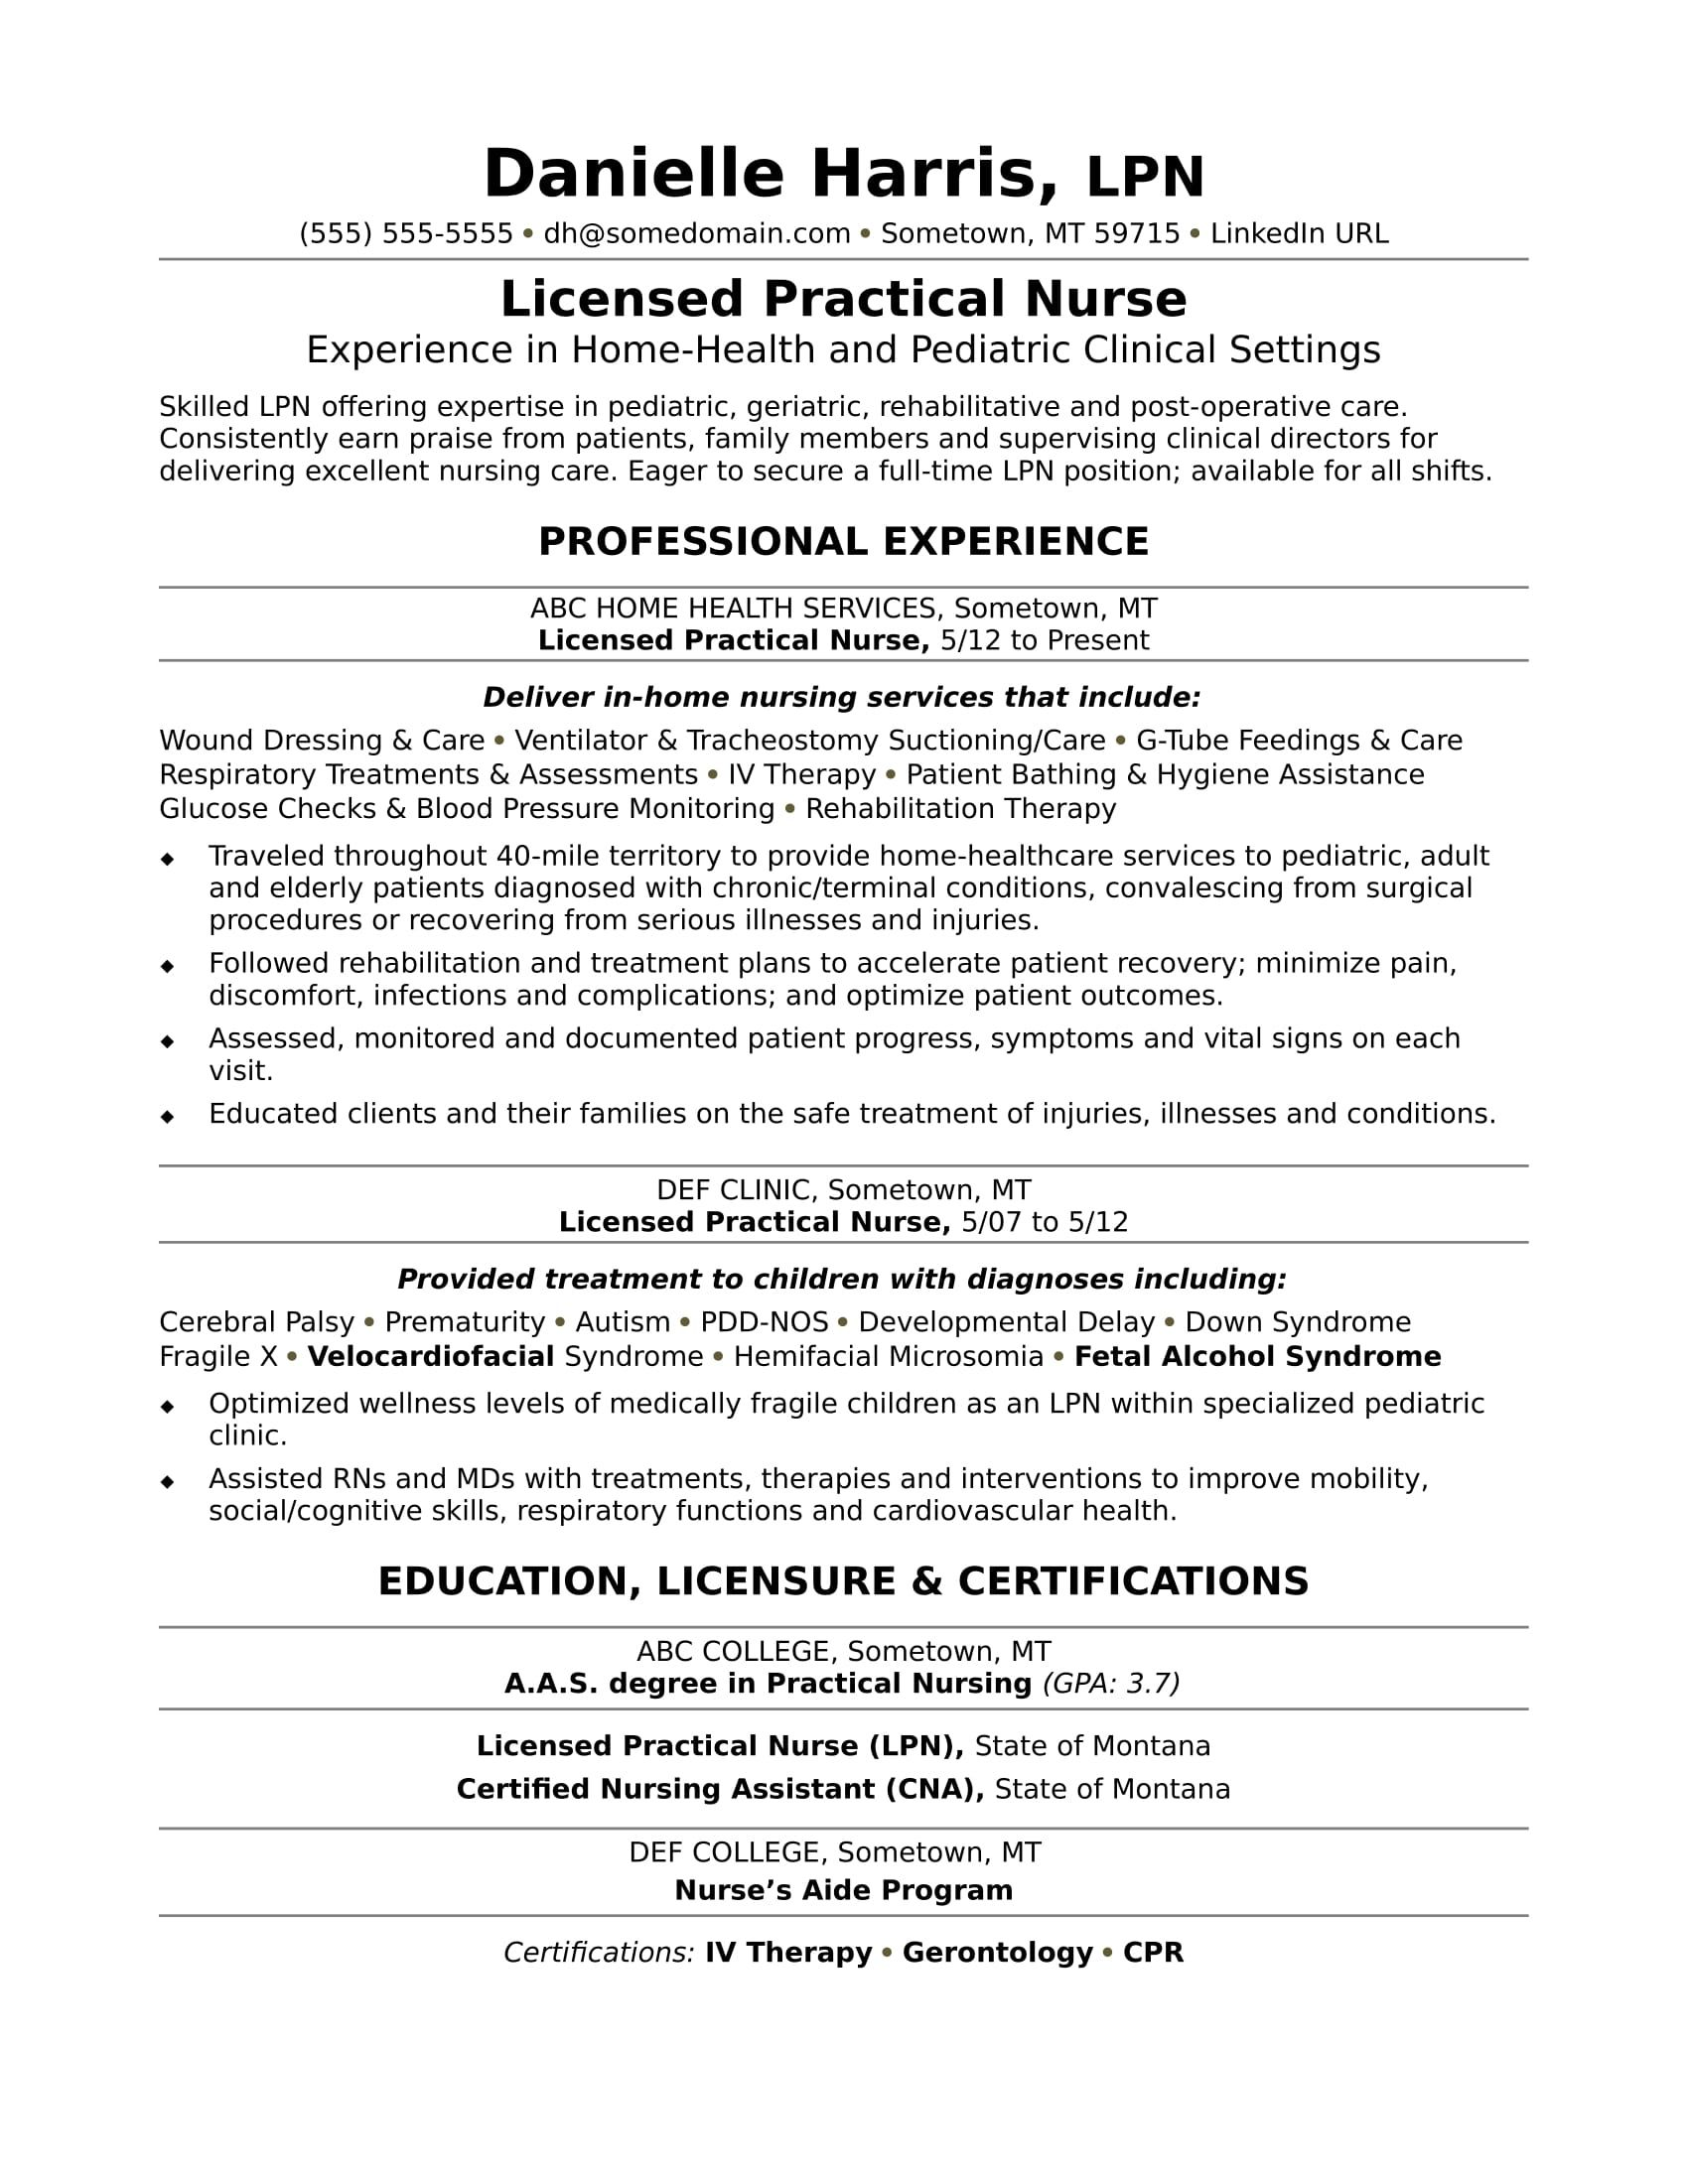 Need To Revive Your Licensed Practical Nurse Resume? Check